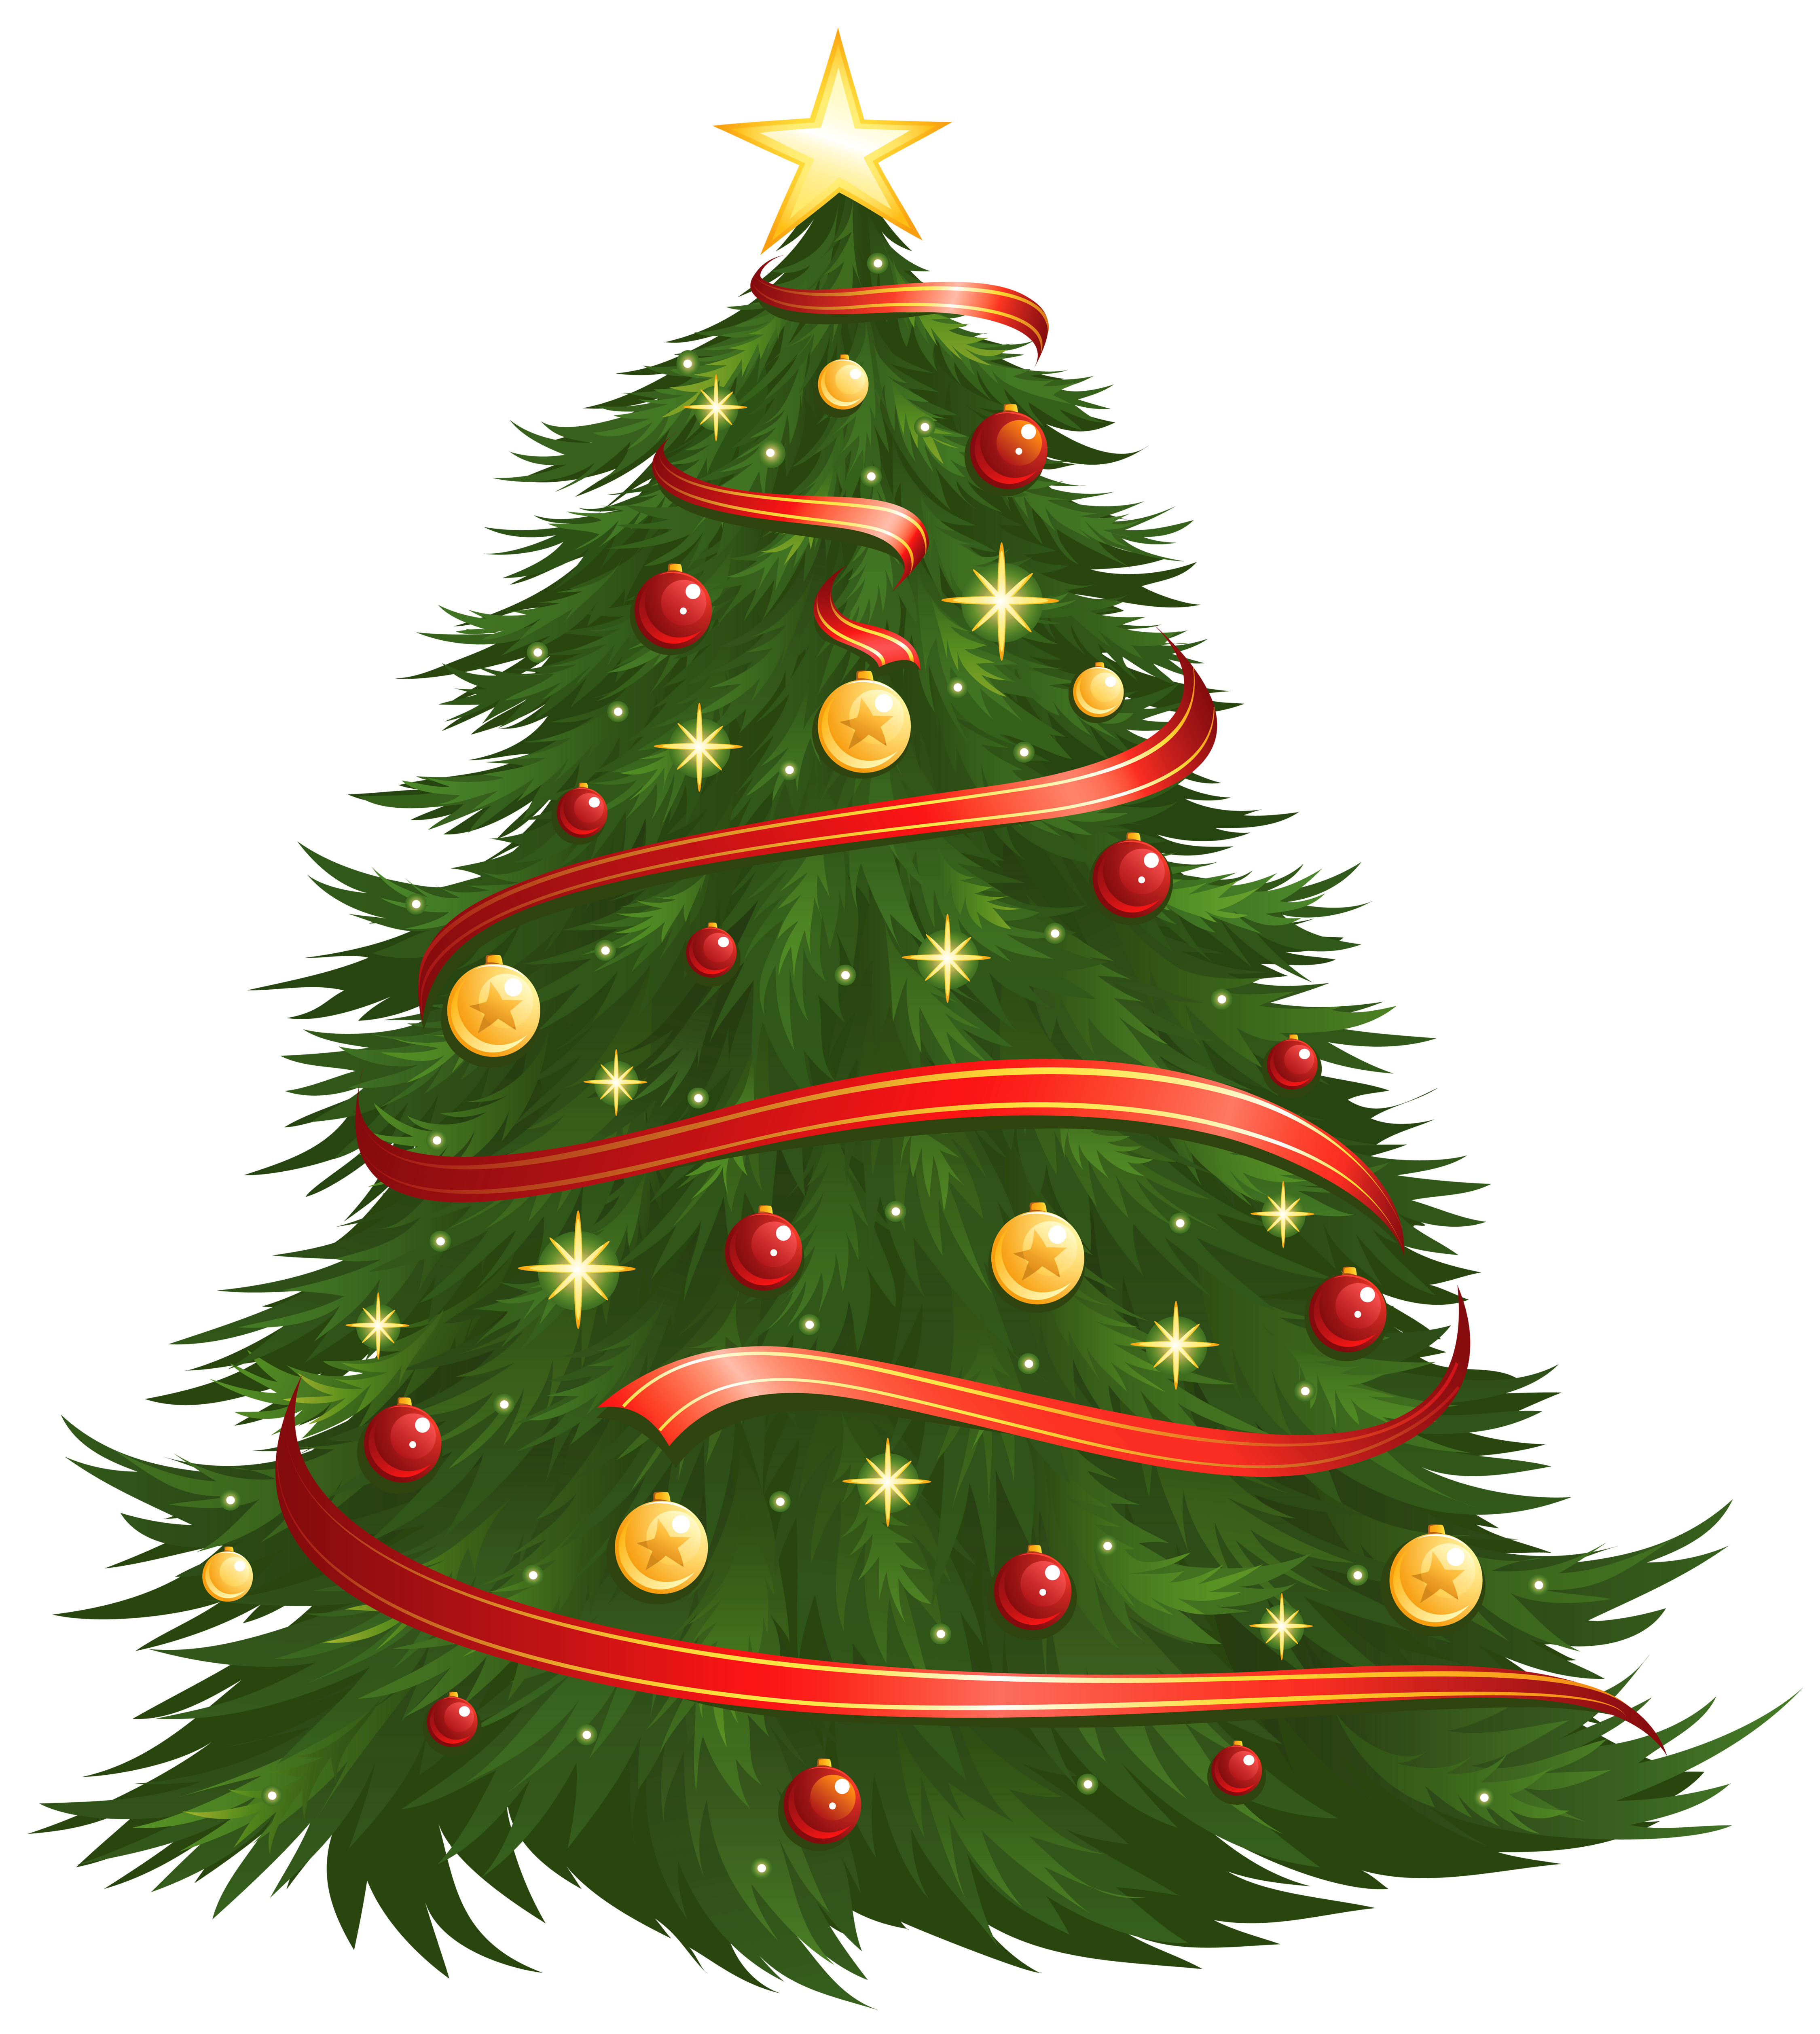 Transparent christmas tree images clipart clipart black and white download Large Size Transparent Decorated Christmas Tree PNG Clipart ... clipart black and white download